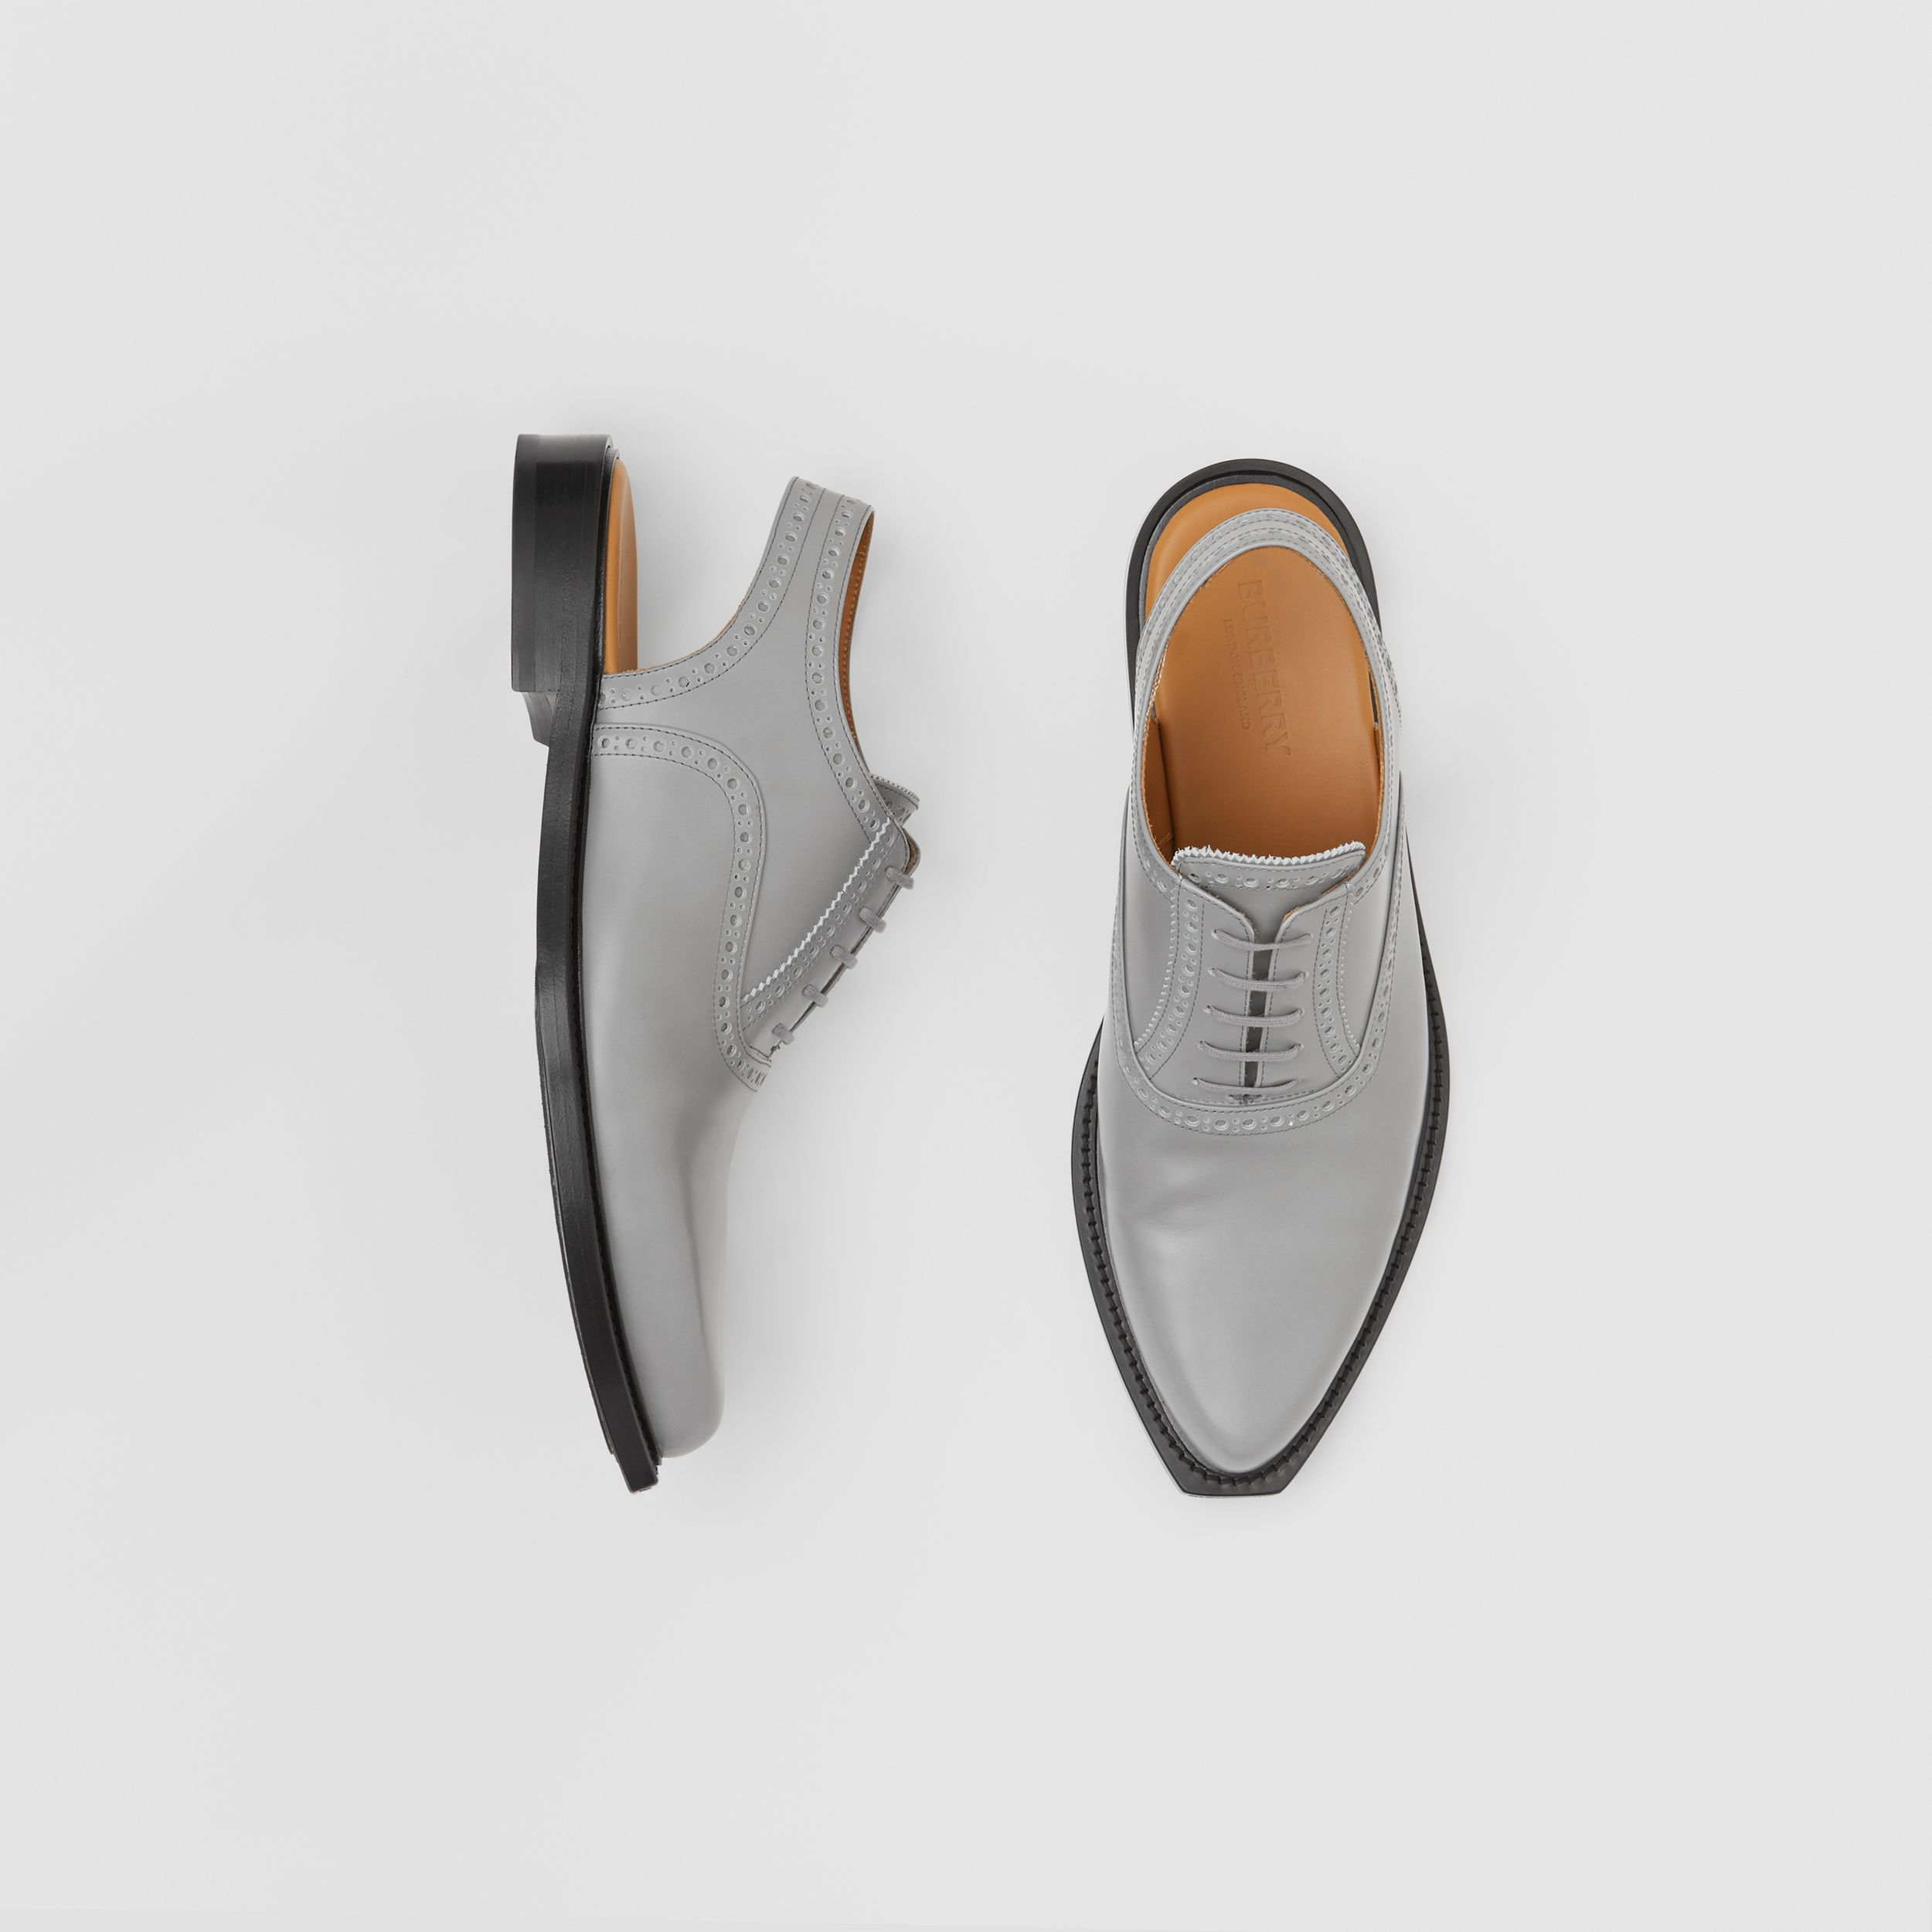 Leather Slingback Oxford Brogues in Cloud Grey - Men | Burberry - 1